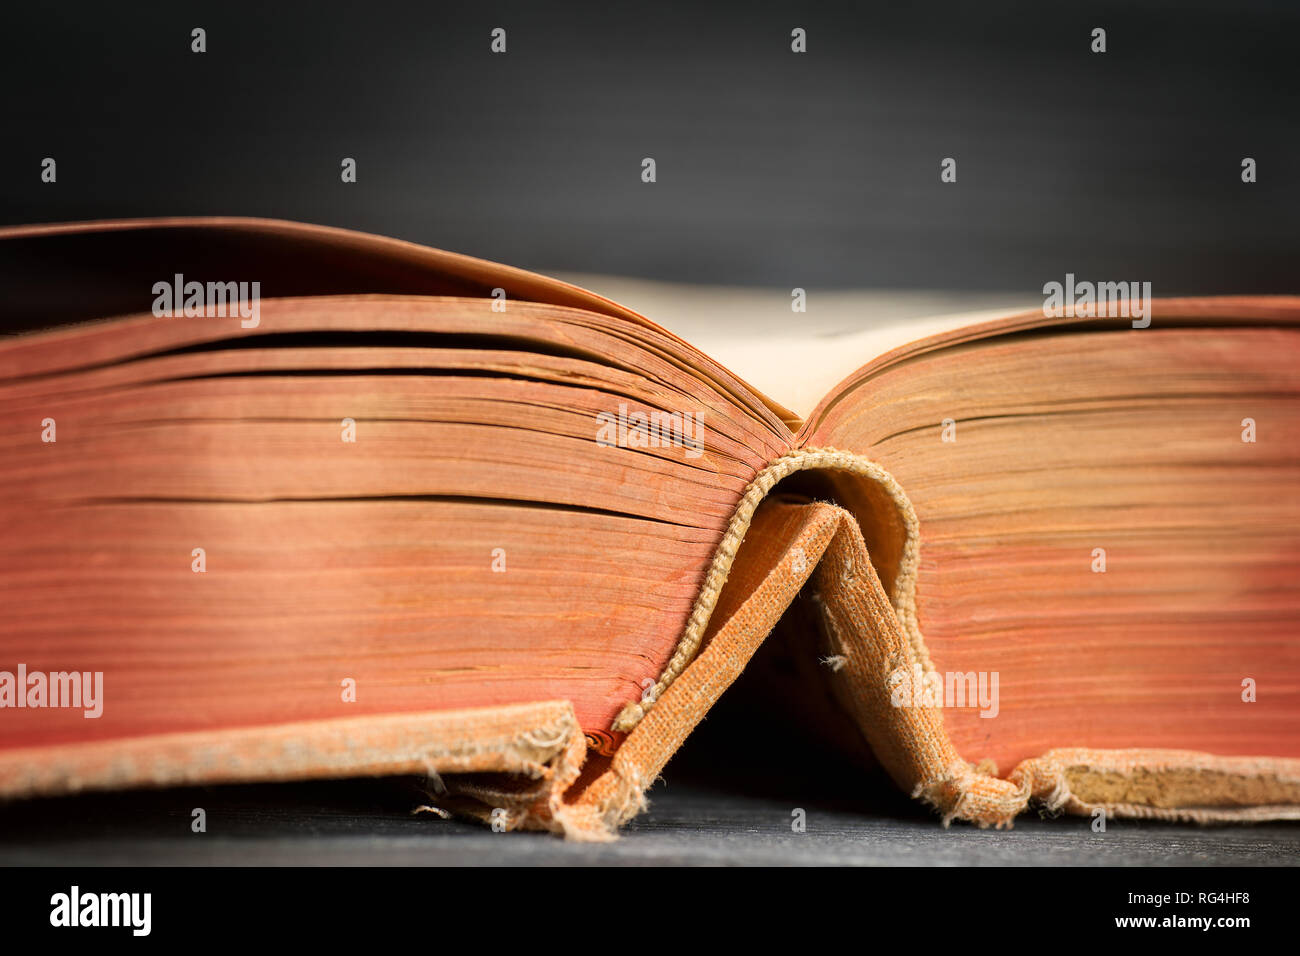 Open ancient book on wooden table close up. Selective focus - Stock Image